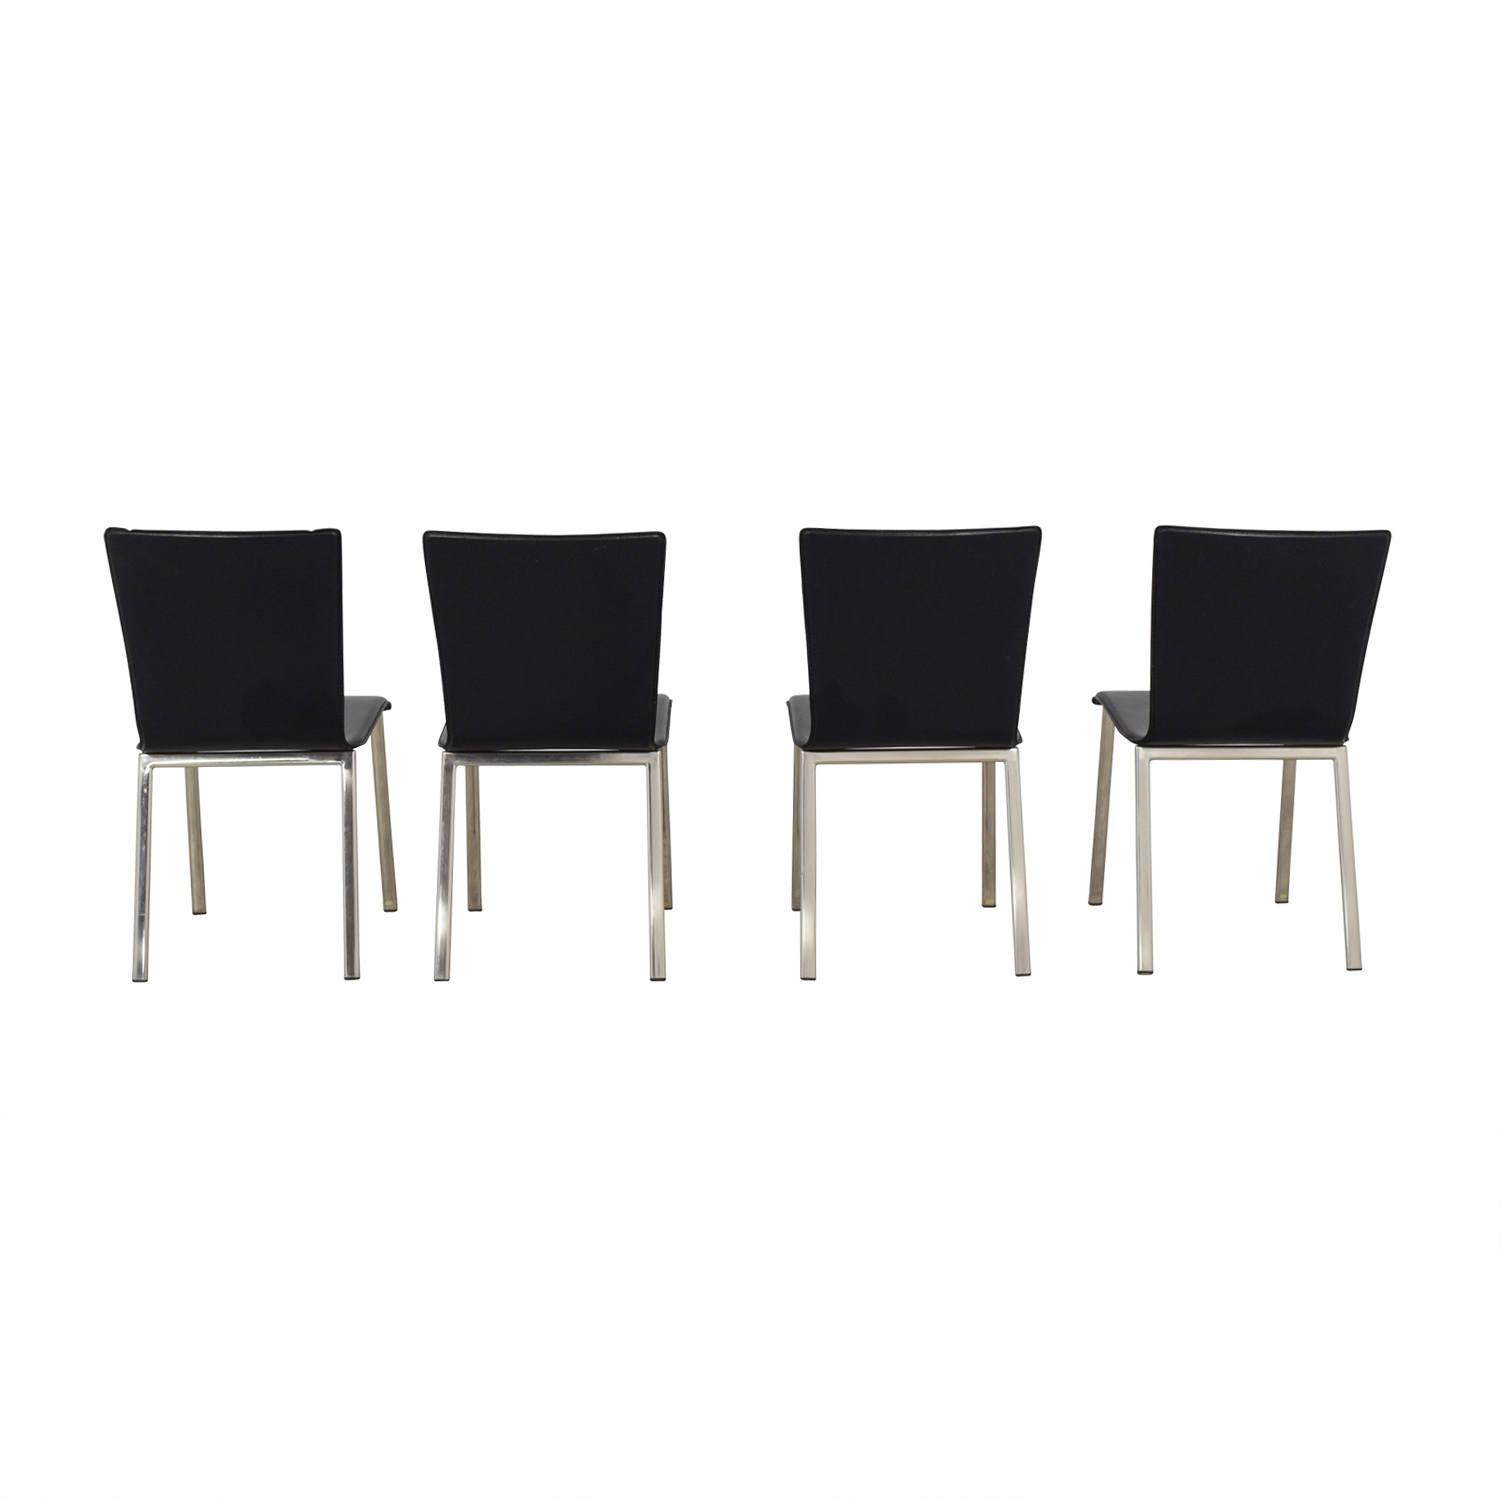 ... buy IKEA Black with Chrome Dining Chairs IKEA Dining Chairs ...  sc 1 st  Furnishare & 71% OFF - IKEA IKEA Black with Chrome Dining Chairs / Chairs